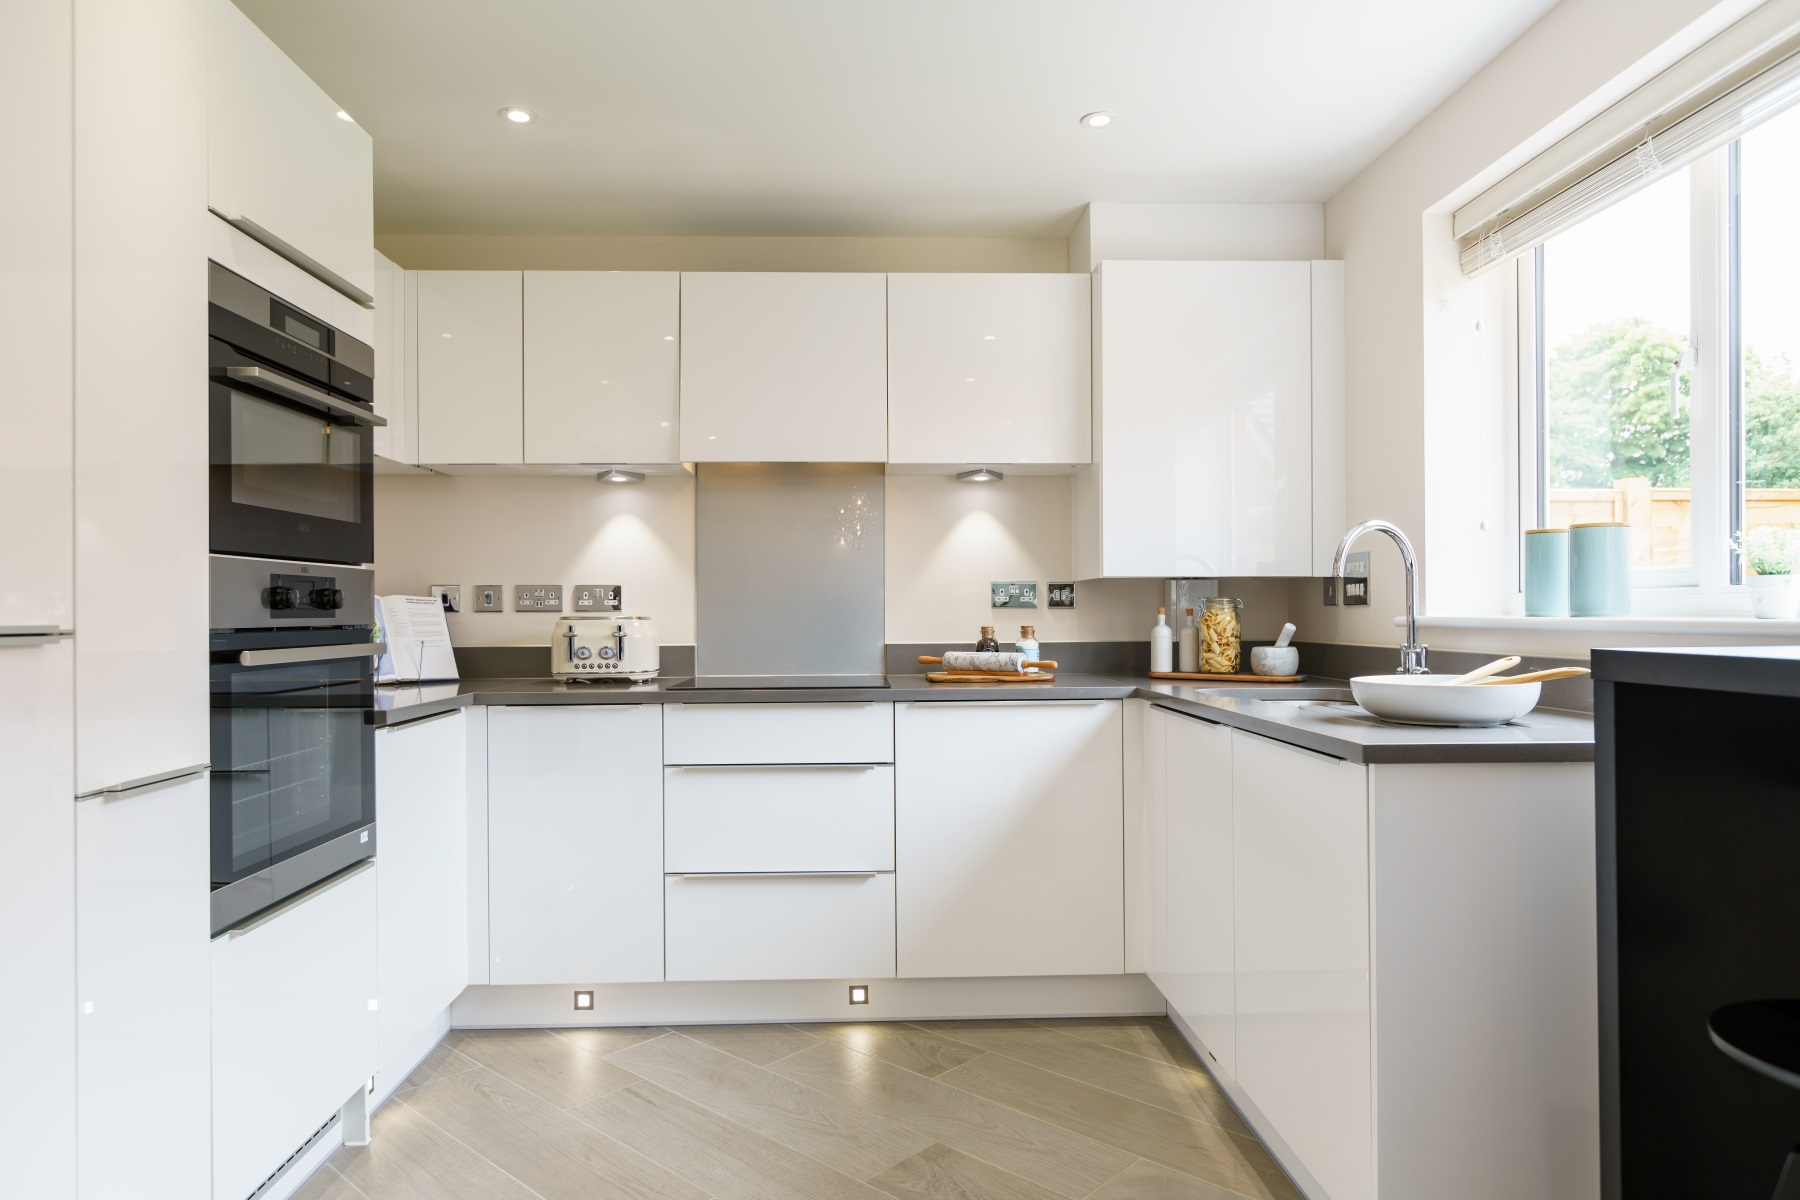 TW Exeter - Mayfield Gardens - Huxford example kitchen